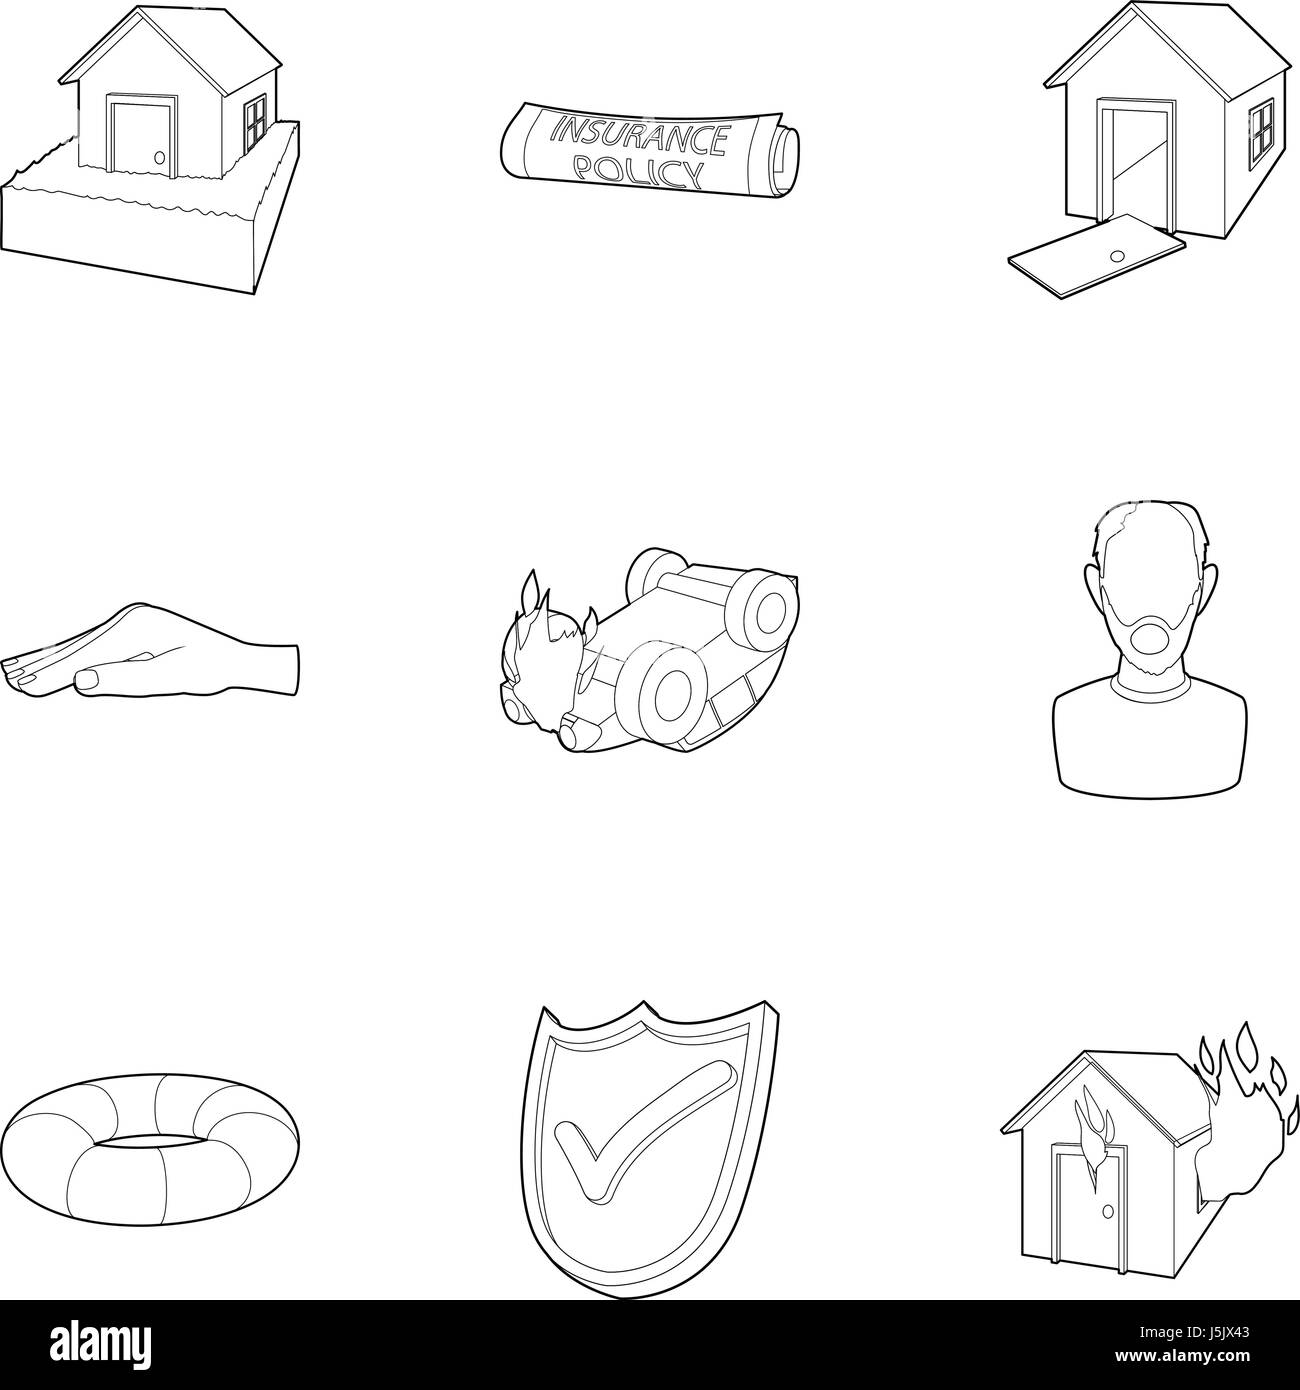 Incident icons set, outline style - Stock Image